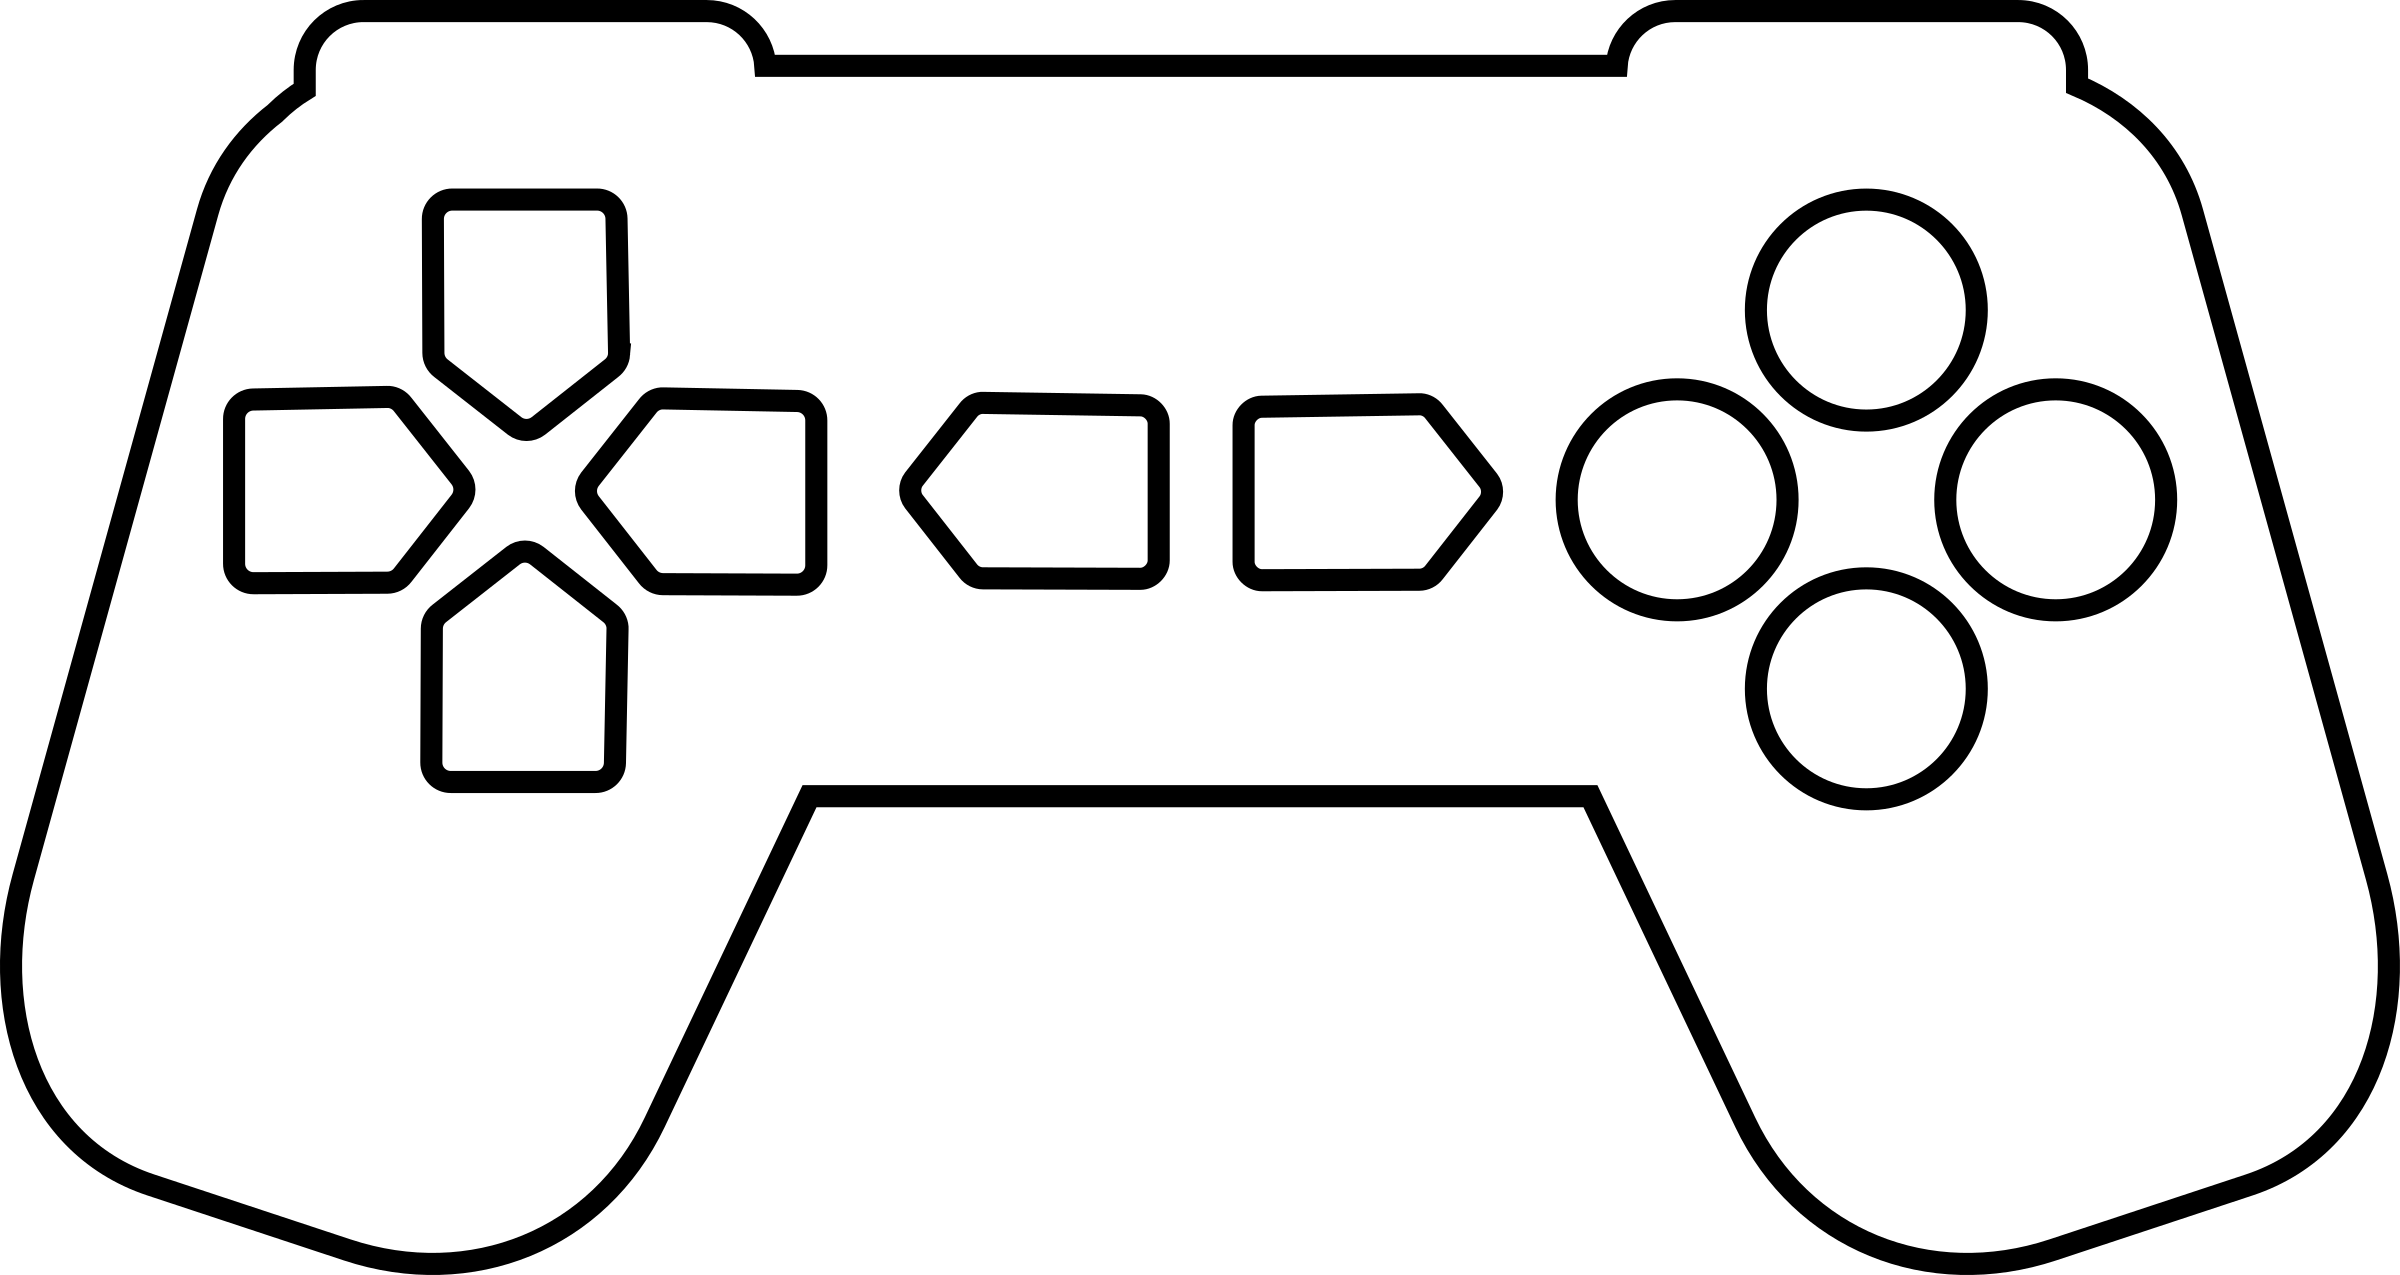 Game Controller Outline White By Qubodup